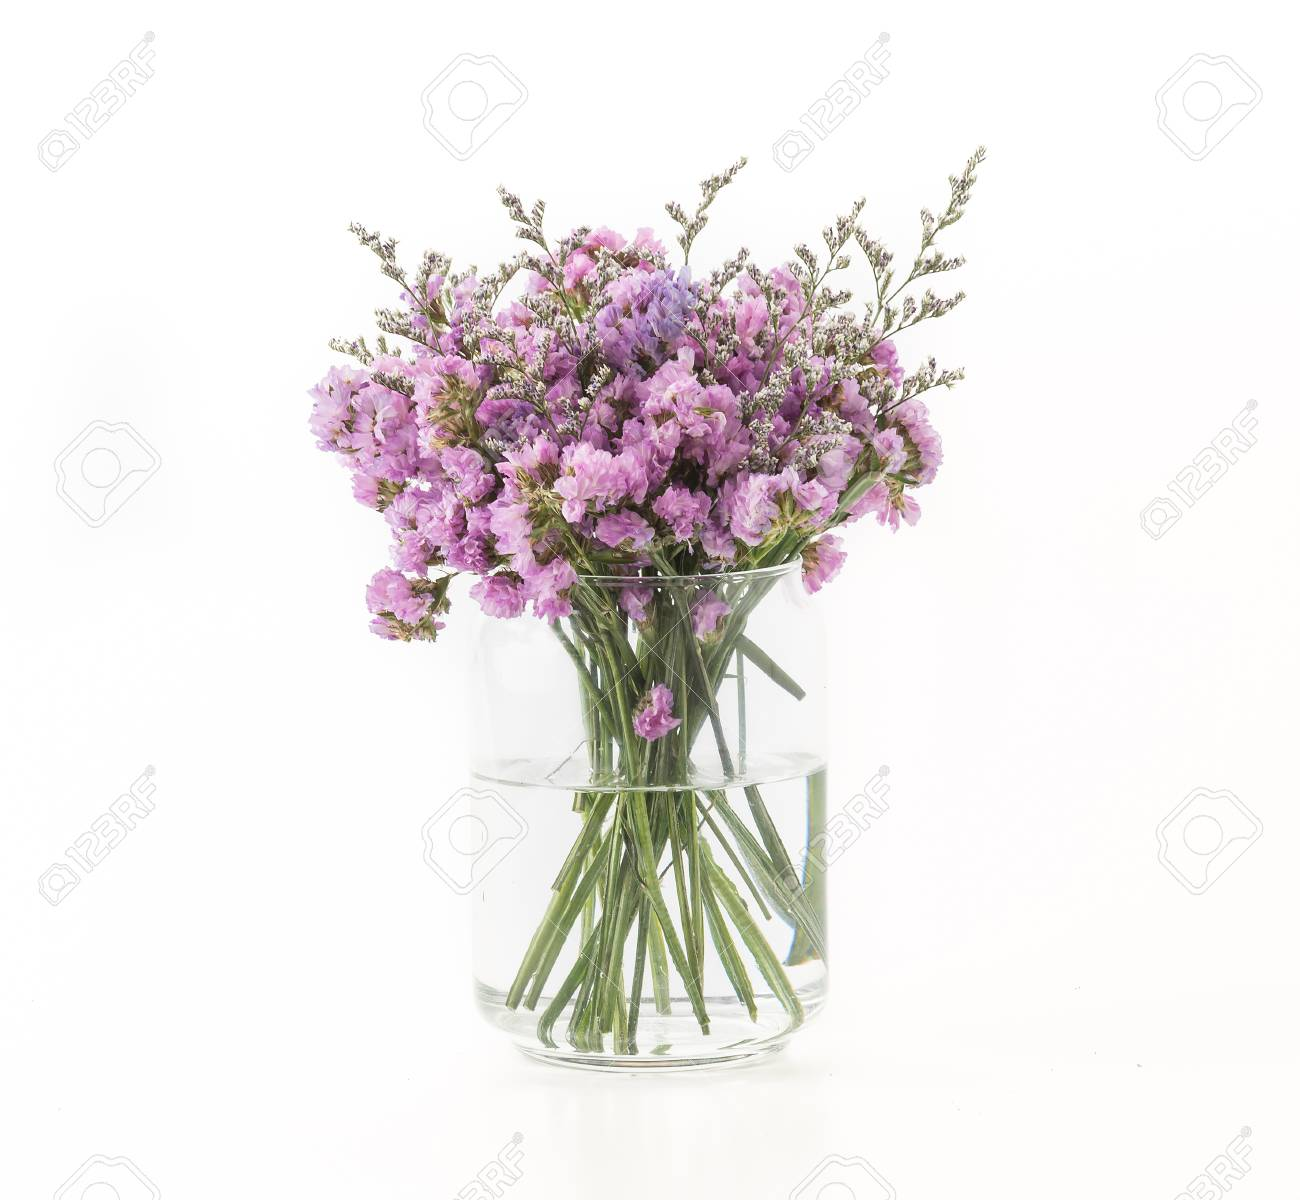 Statice flower bouquet on white background stock photo picture and statice flower bouquet on white background stock photo 44355698 mightylinksfo Images